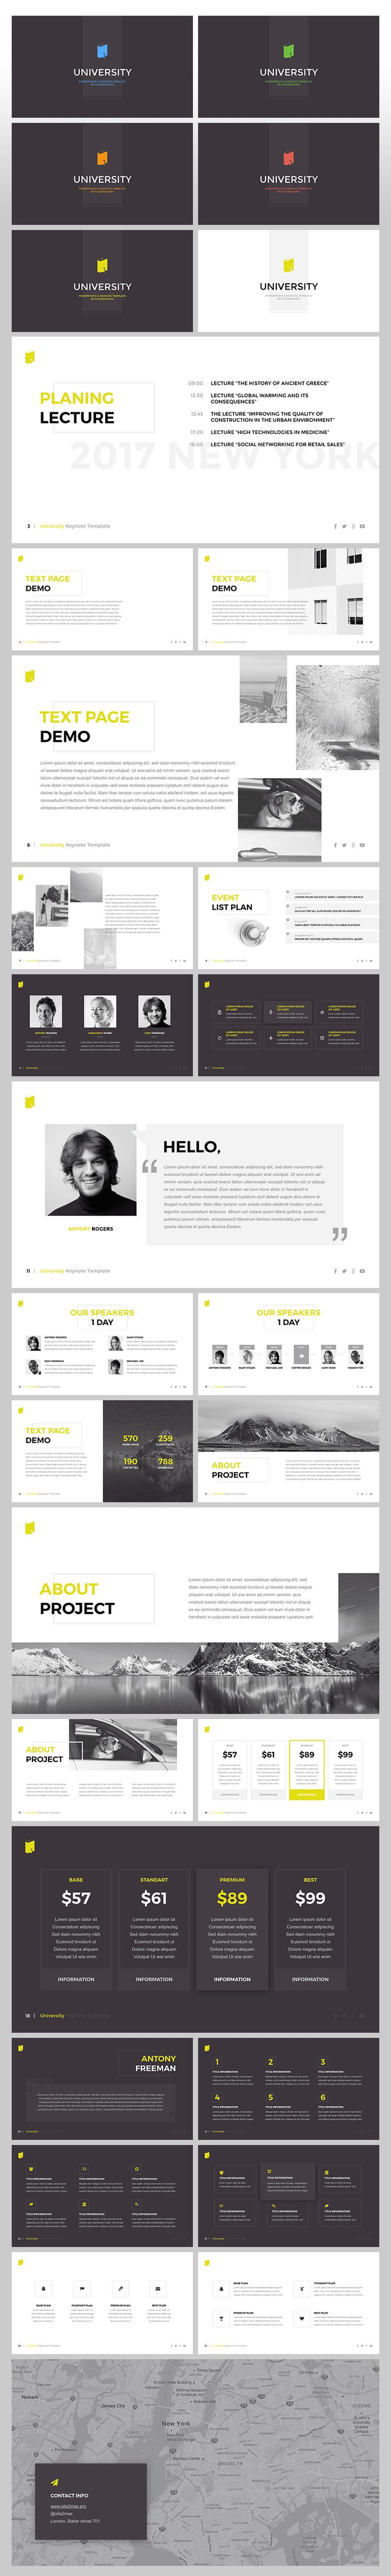 "Download: http://site2max.pro/university-keynote-template/ ""University"" Keynote template #university @keynote #key #presentation #slide #slides #marketing"